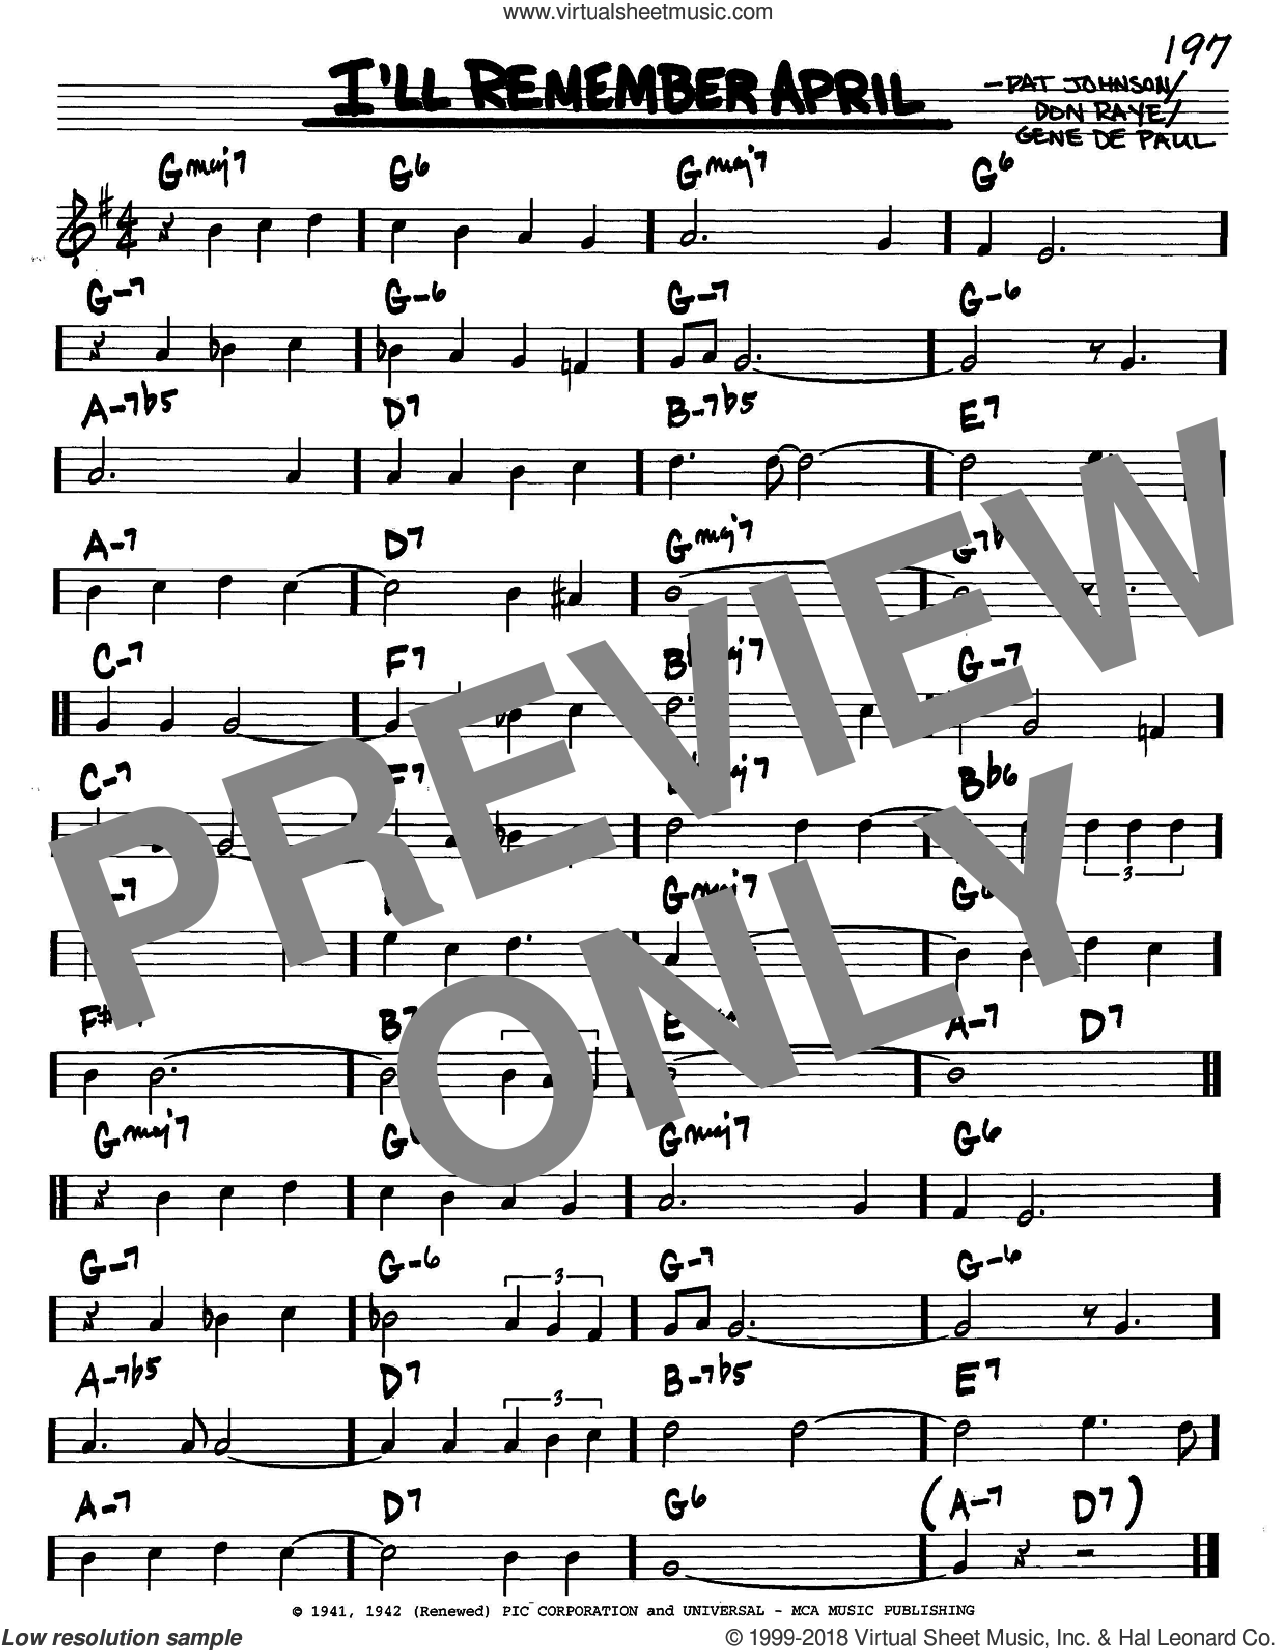 I'll Remember April sheet music for voice and other instruments (C) by Pat Johnson, Woody Herman, Don Raye and Gene DePaul. Score Image Preview.